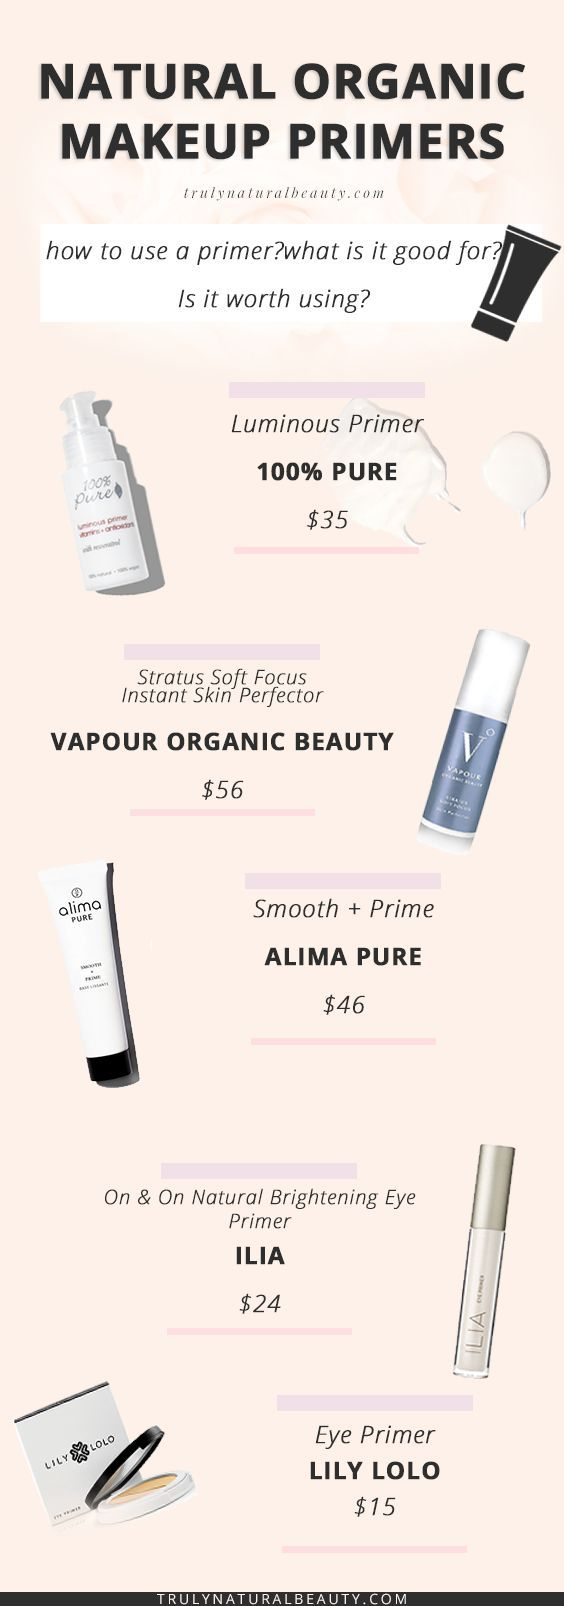 Natural organic makeup primers. How to use makeup primers, what are primers for,  why use primers, makeup primers, 100% Pure primer, Vapour Organic Beauty Primer, Alime Pure primer, Ilia Primer, Lily Lolo primer,all natural ingredients, best natural cosmetic line, all natural ingredients, best natural ingredients for skin, all natural makeup, organic makeup beauty products, natural beauty products, truly natural beauty